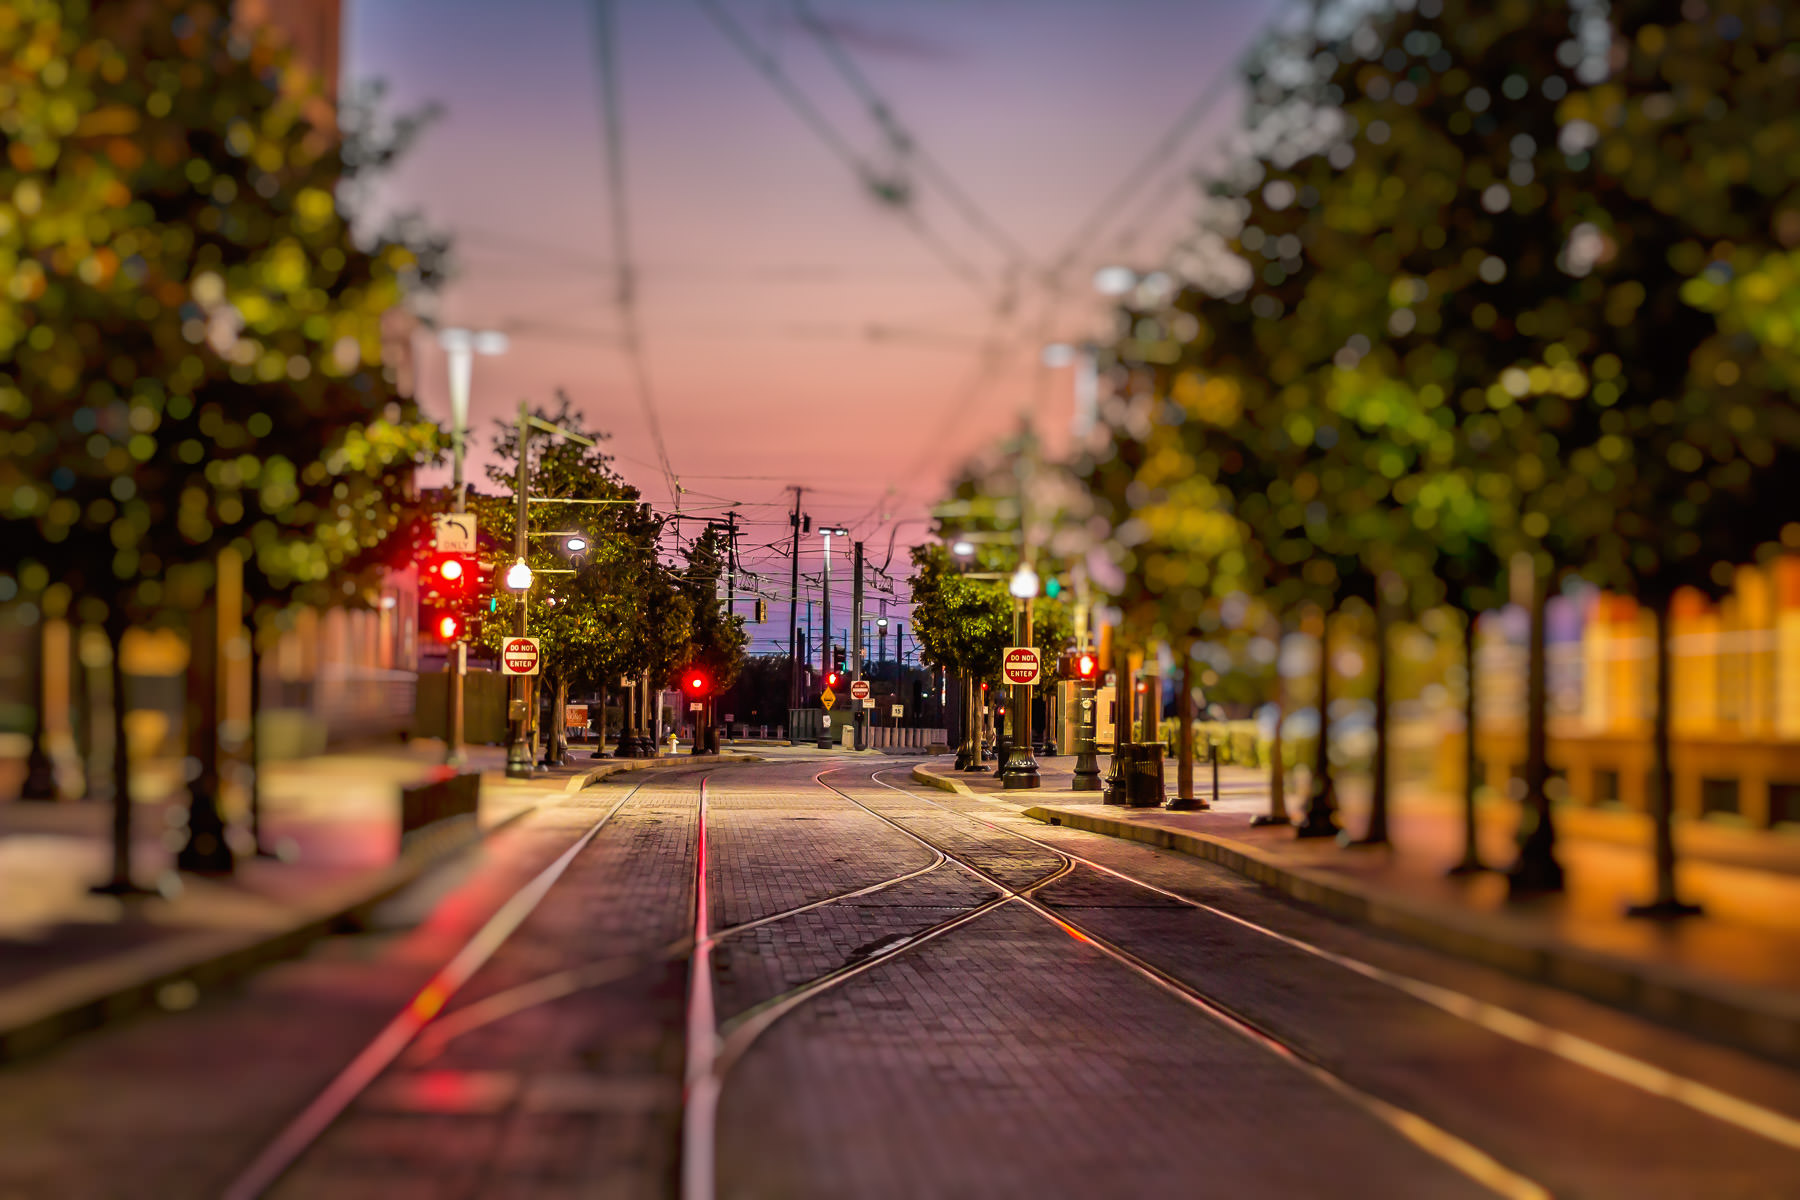 DART Rail tracks in Dallas' West End district as the sun sets over North Texas.